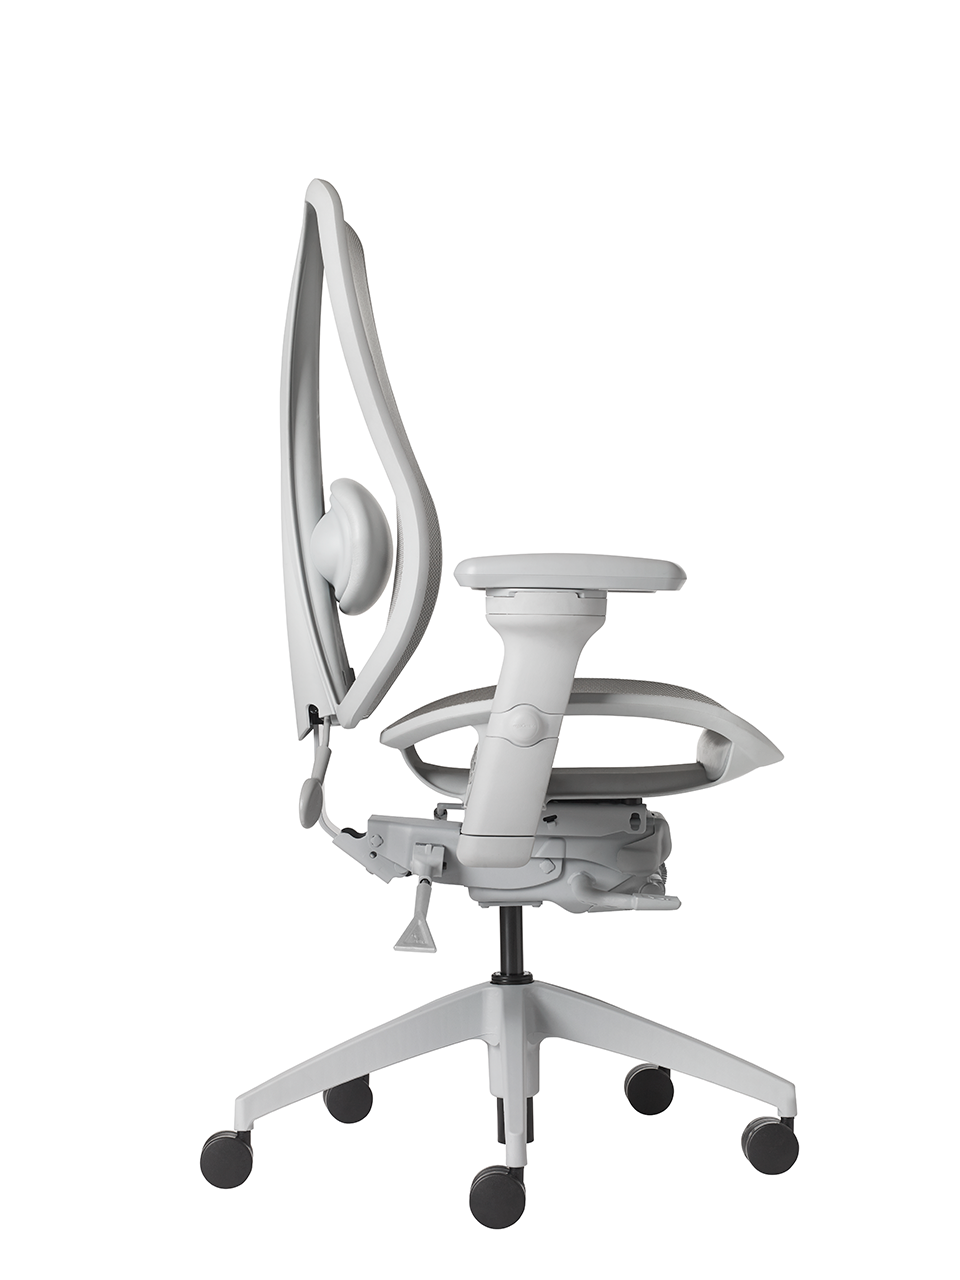 Office chair picture Pink Expand Reviewscom 24 Hour Office Chair Tcentric Hybrid Ergonomic Chair From Ergocentric